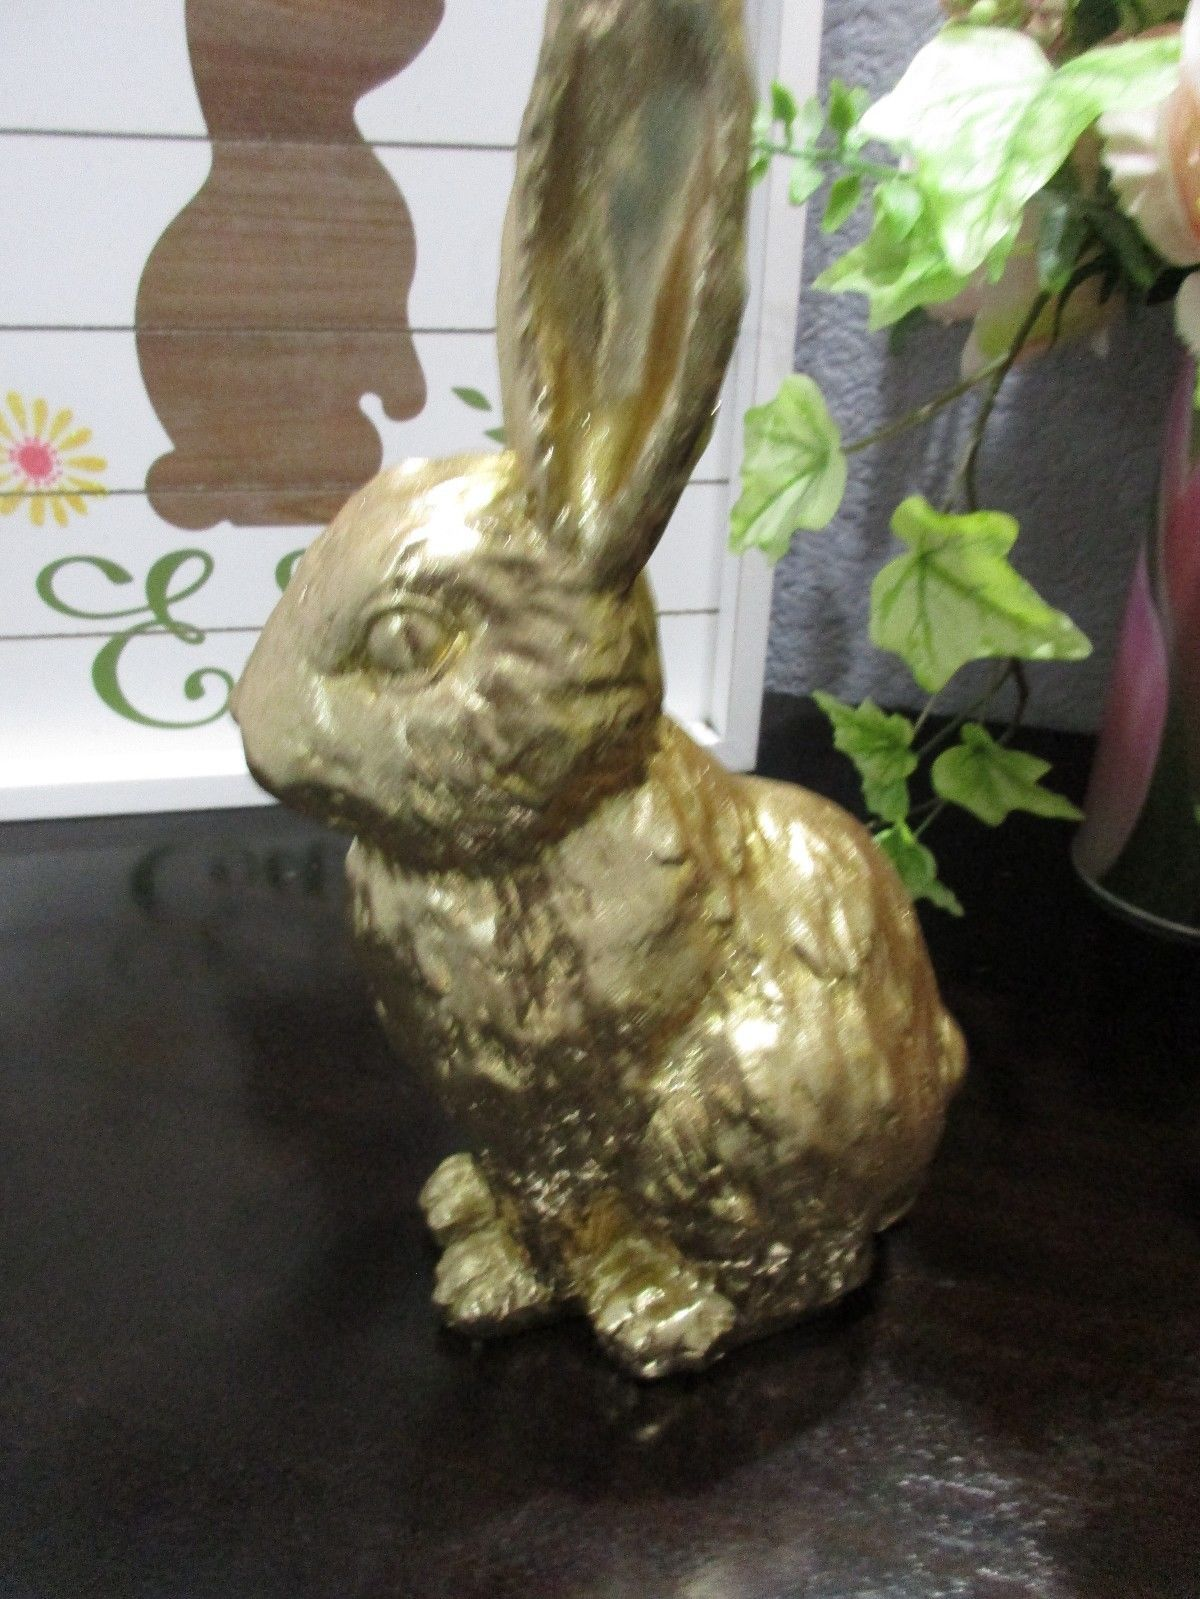 """Easter Spring Gold Bunny Rabbit Statue Figurine Tabletop Decor 8"""" Tall"""